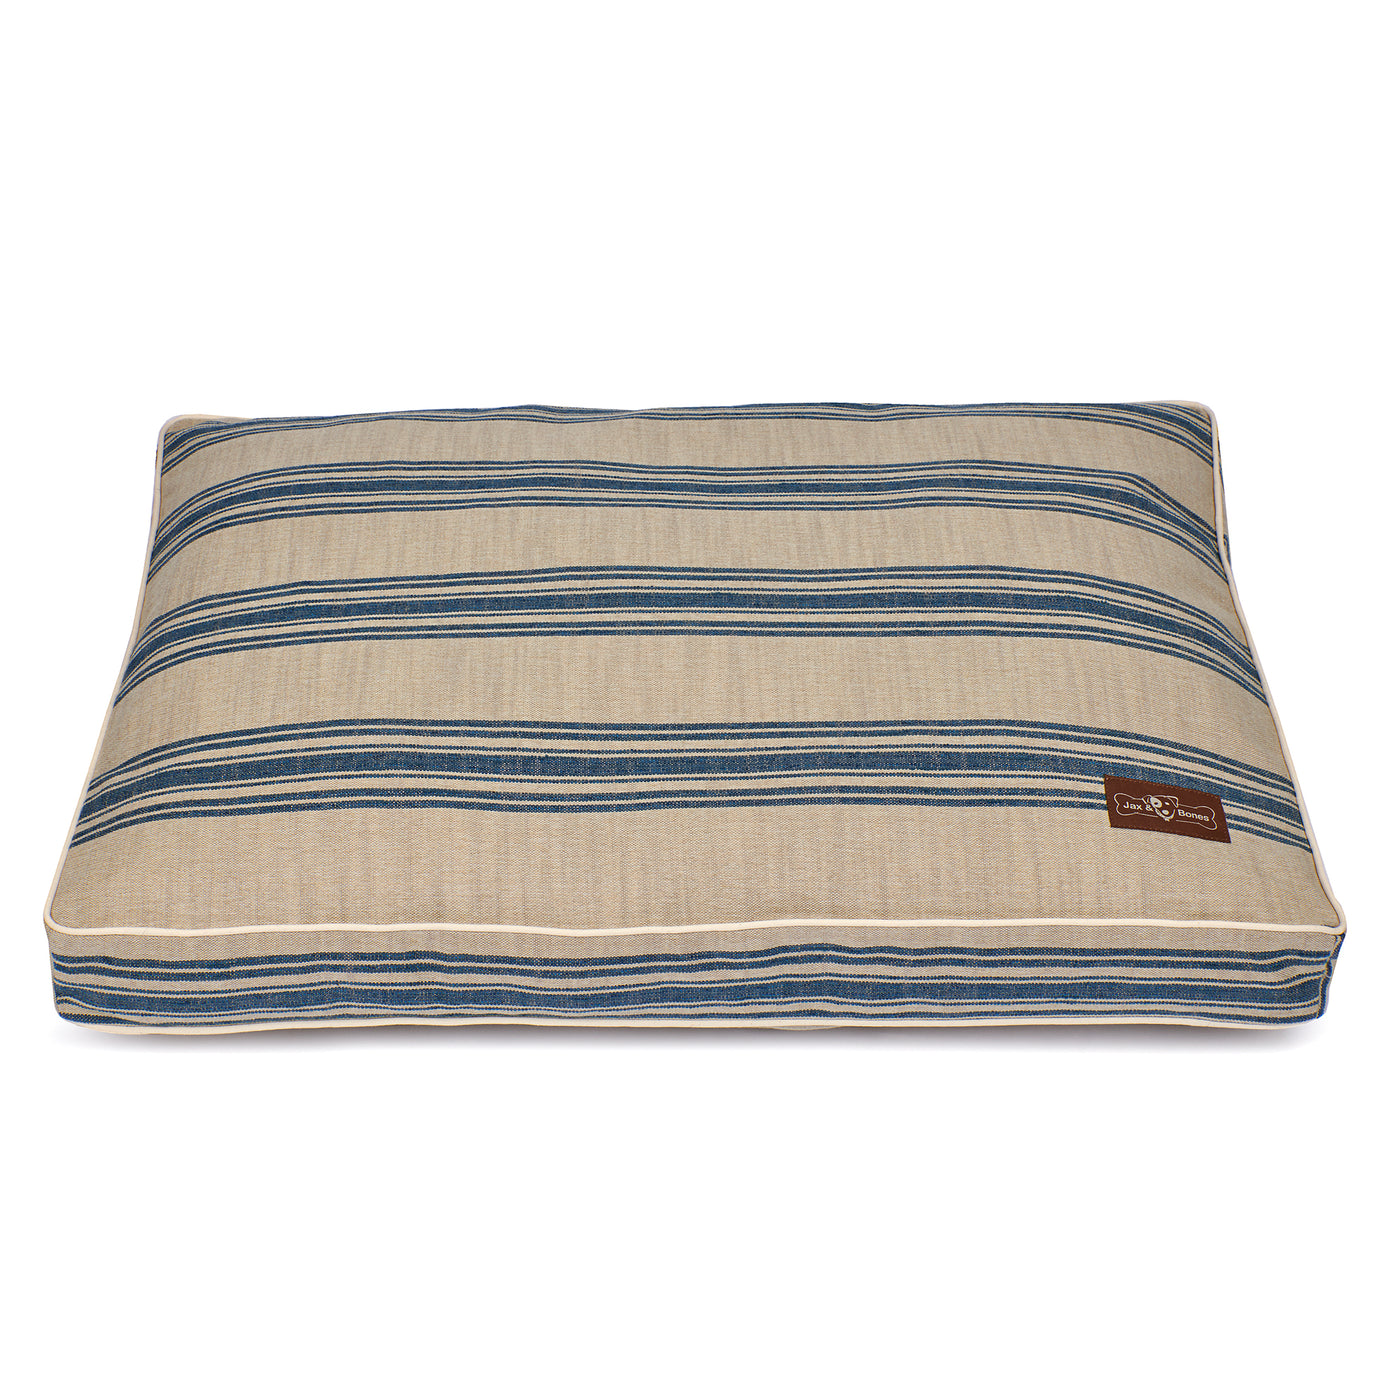 Hillside Waves Cotton Blend Pillow Bed